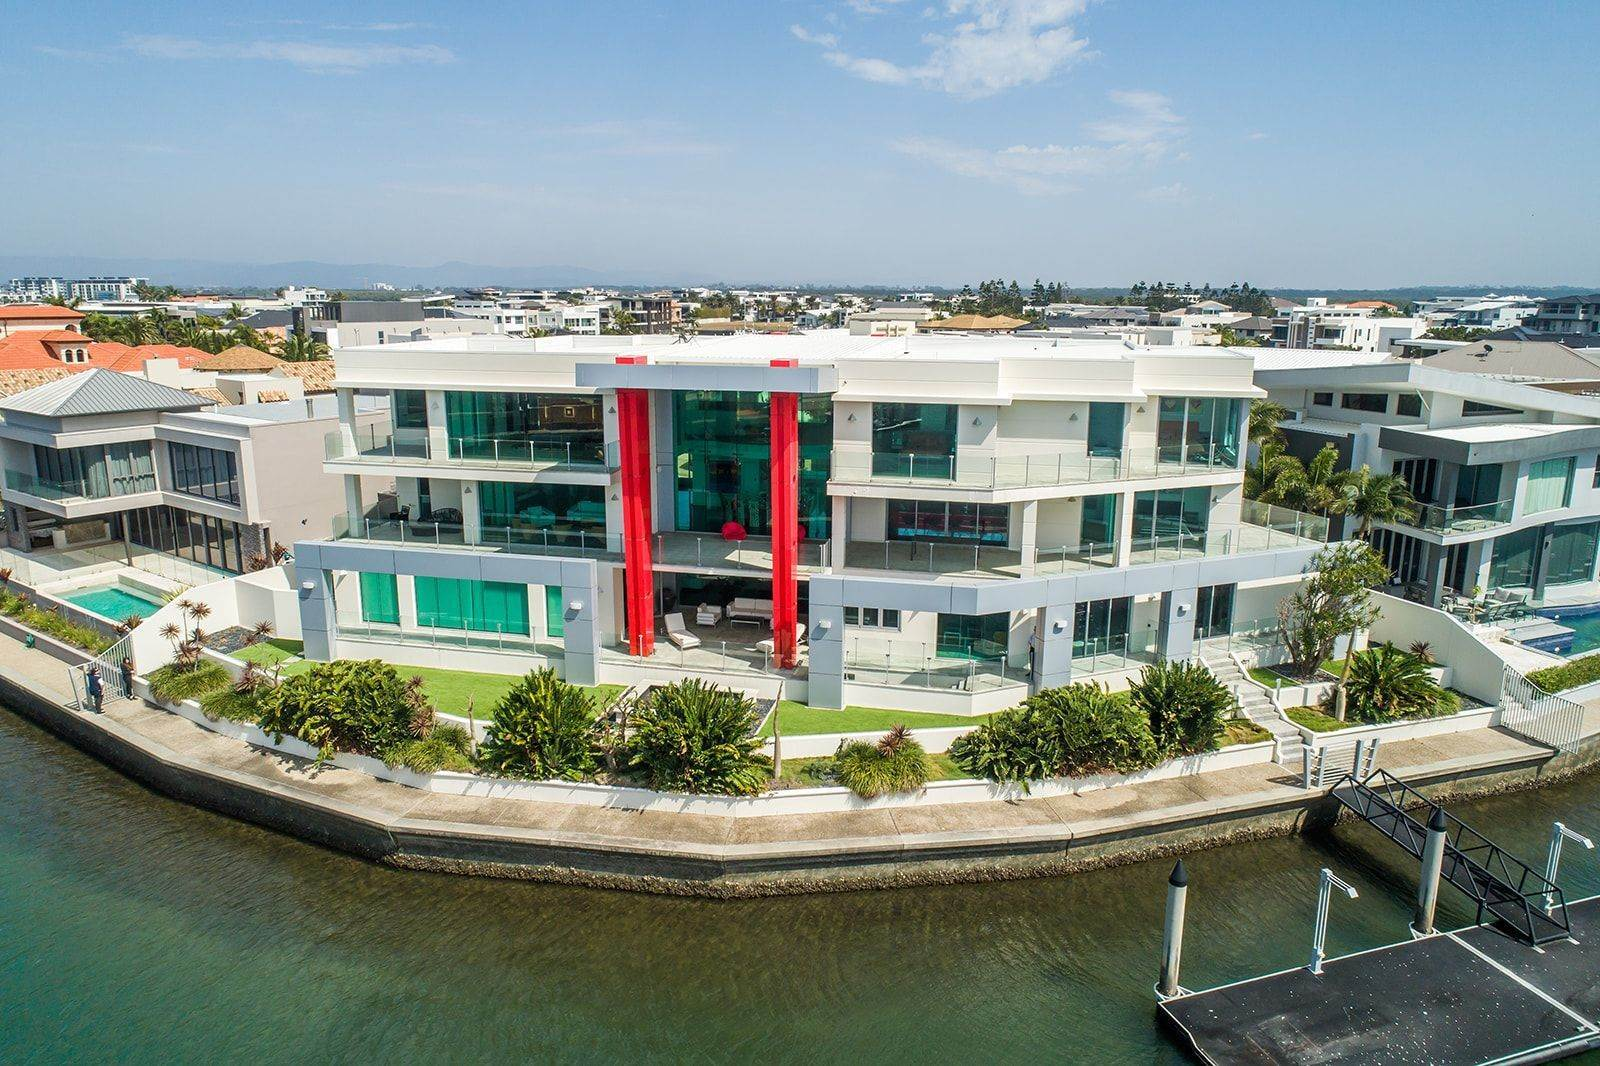 Single Family Home for Sale at 'Baltimore' extravagant ode to waterfront living Waterfront opulence, Gold Coast masterpiece 46 - 48 Royal Albert Crescent Sovereign Islands, Queensland,4216 Australia